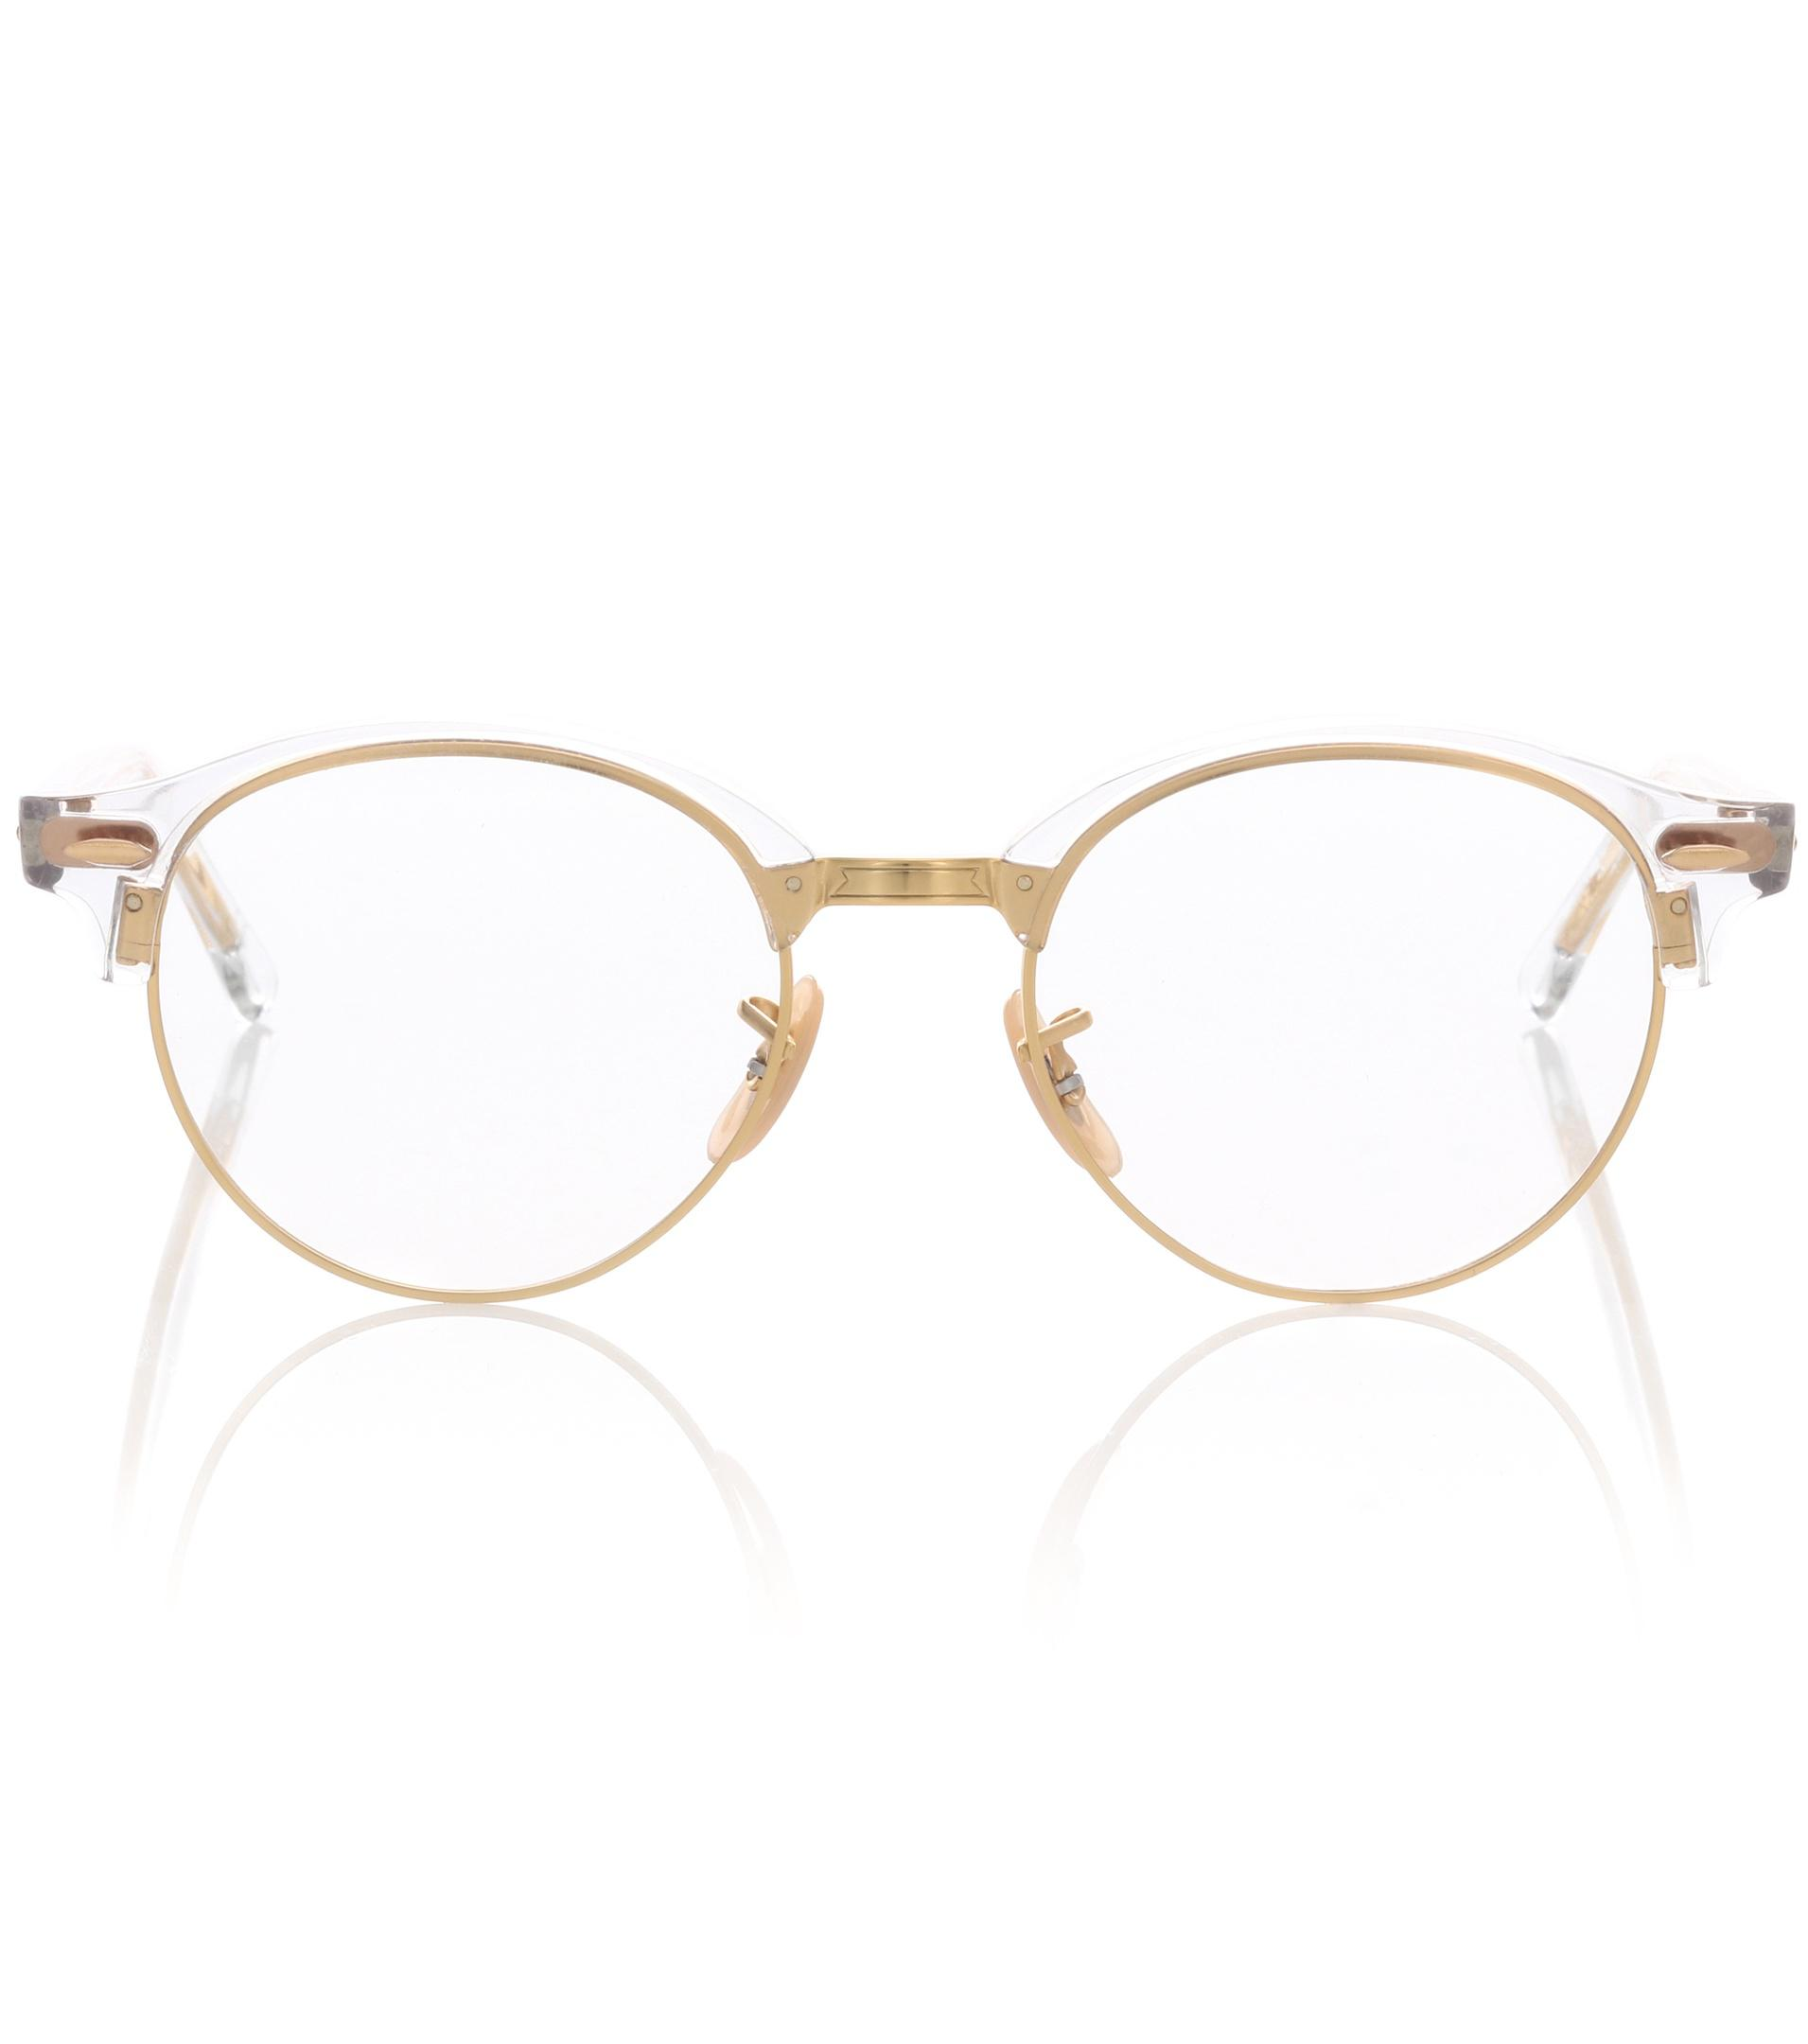 a5e6c35199a Lyst - Ray-Ban Clubround Glasses in Metallic